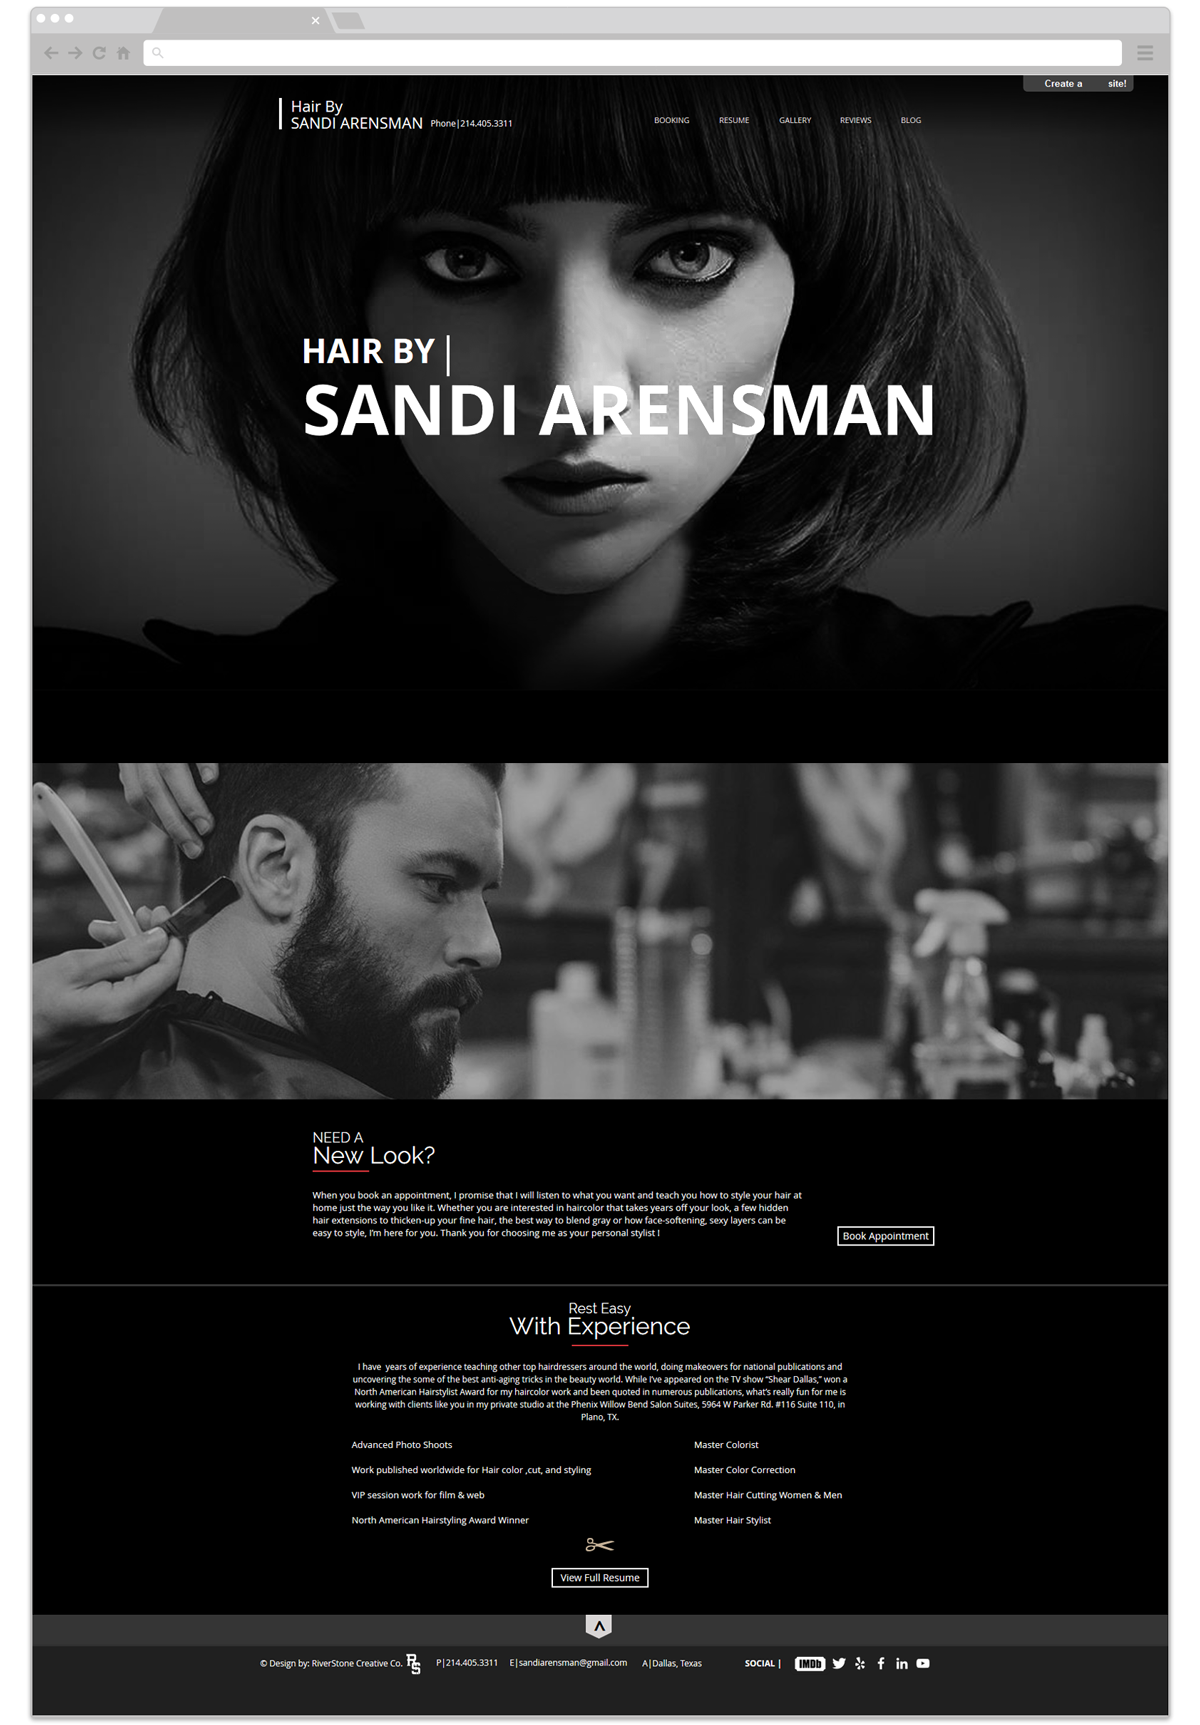 river-stone-creative-co-websites-sandi-arensman-hair-1